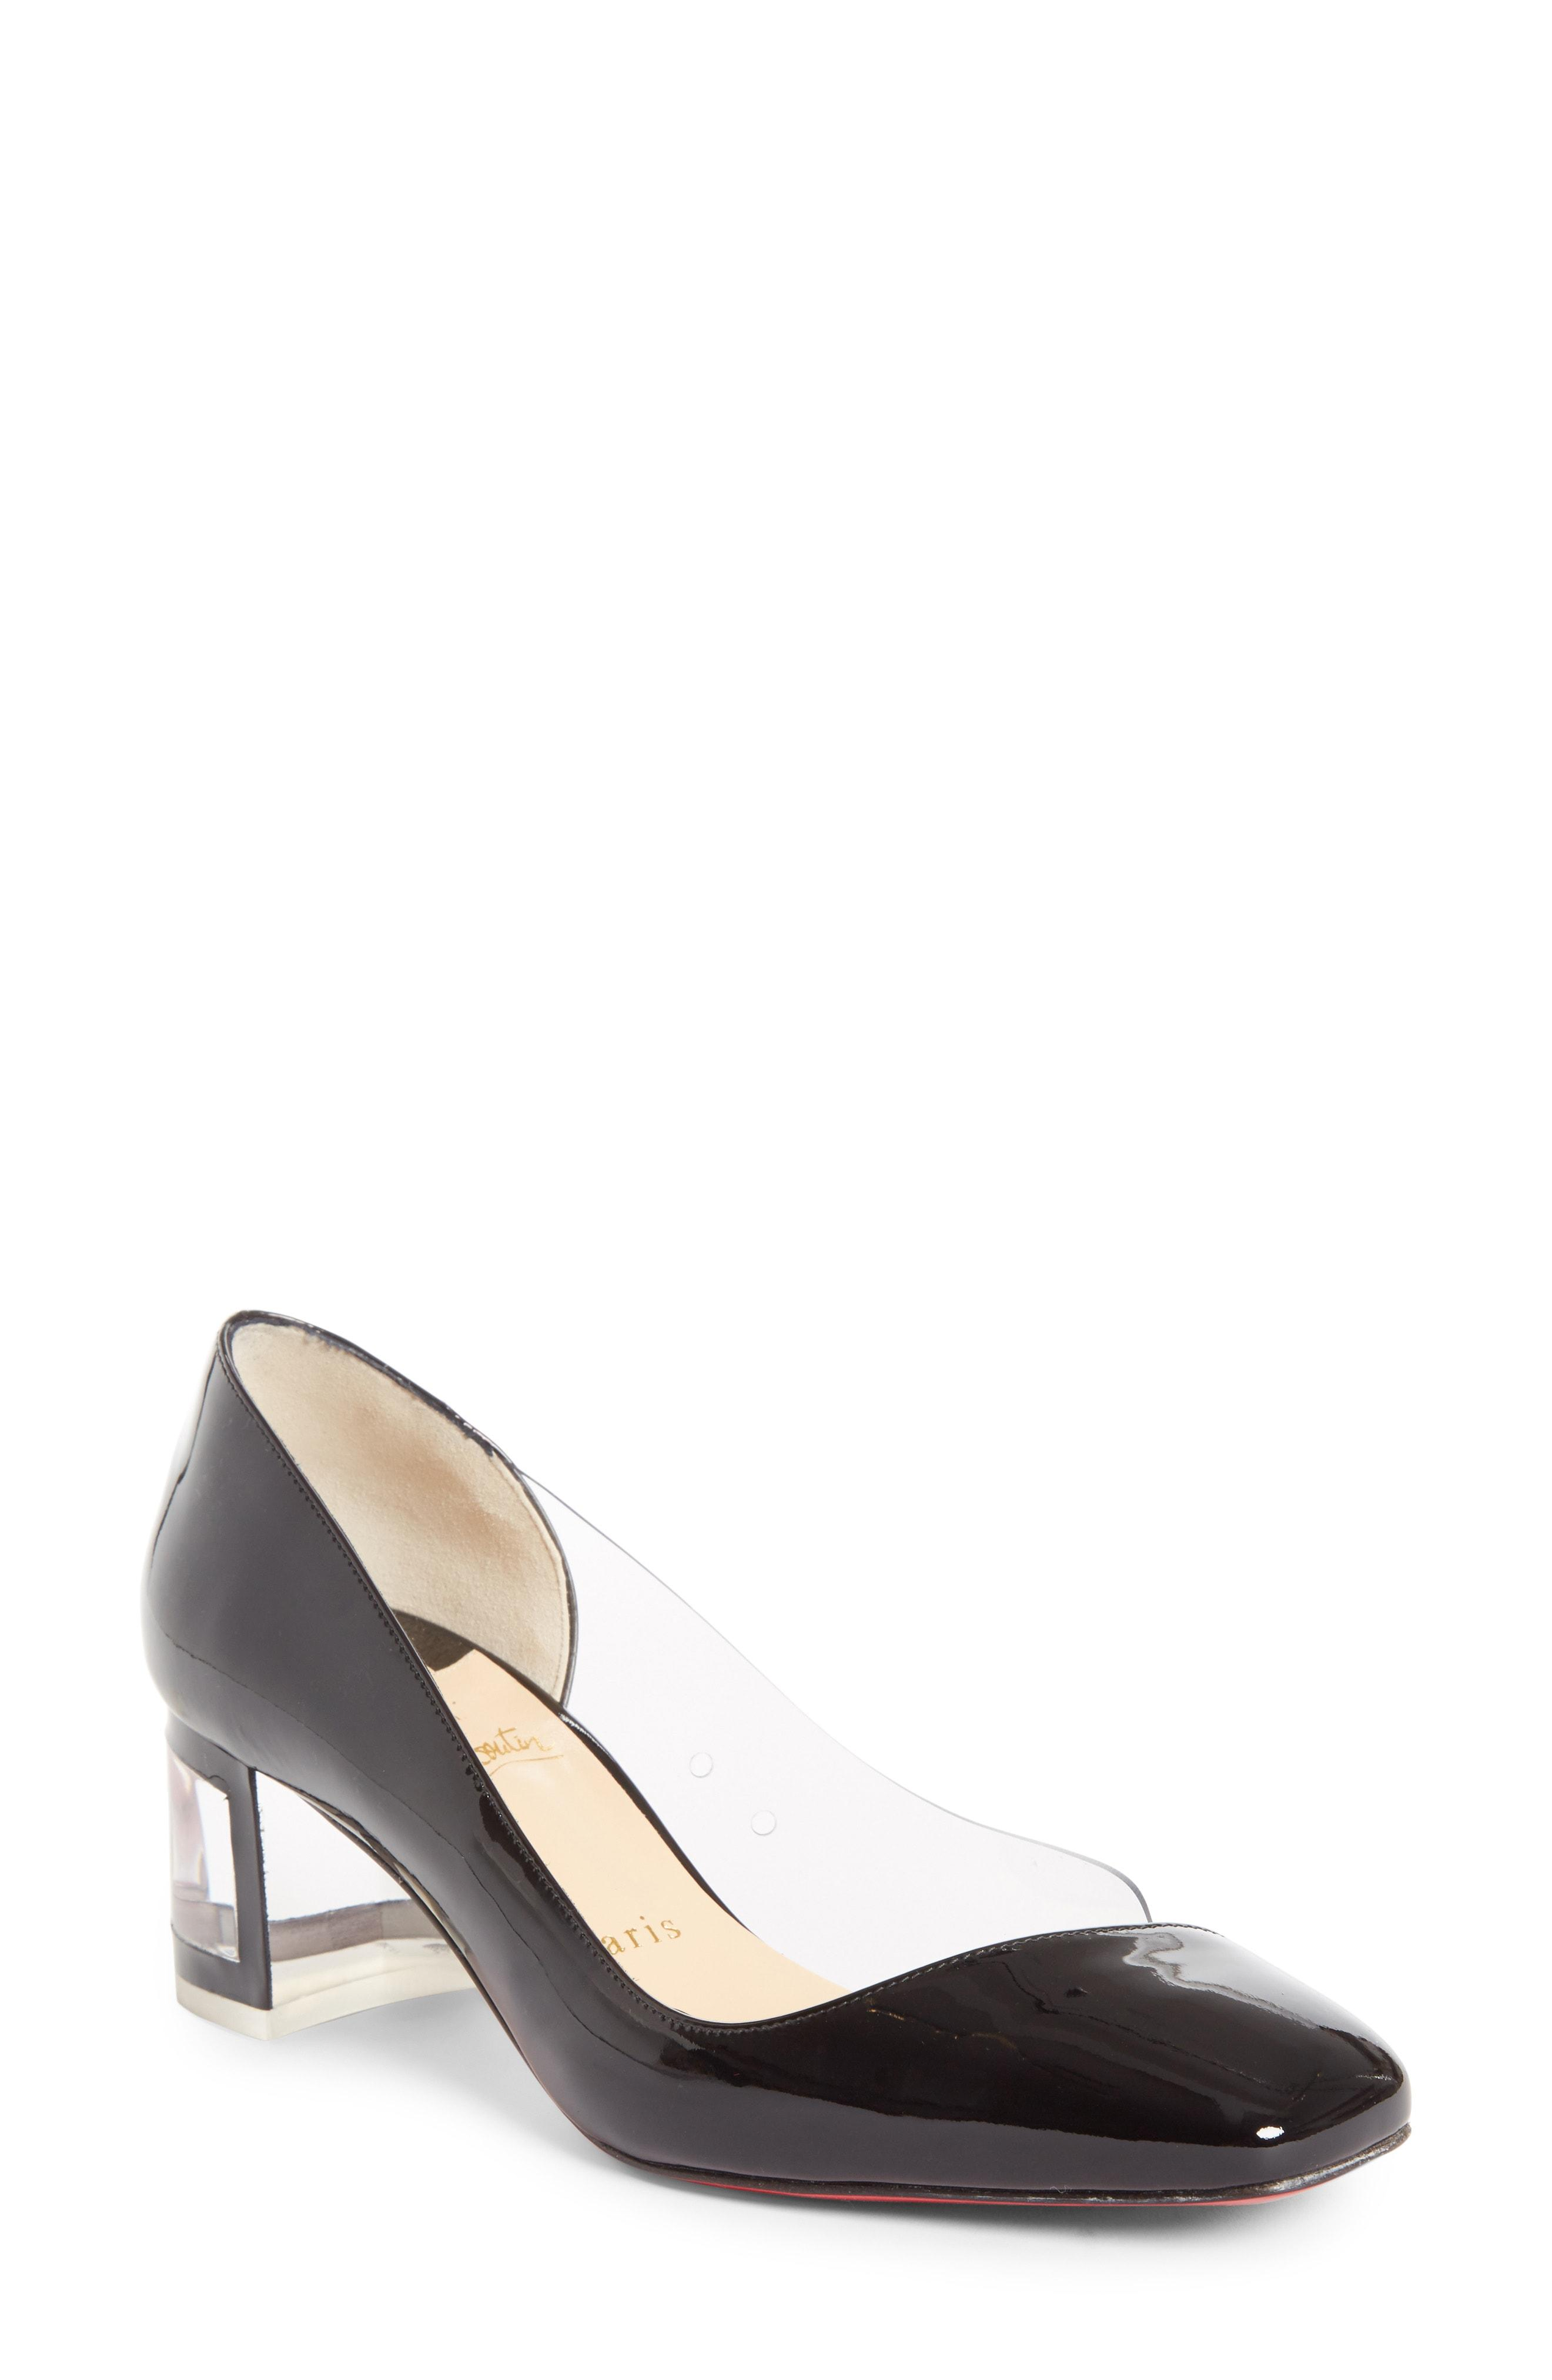 3696bb44578 CHRISTIAN LOUBOUTIN. Provisore Patent Clear Vinyl Red Sole Pumps in Black   Transparent